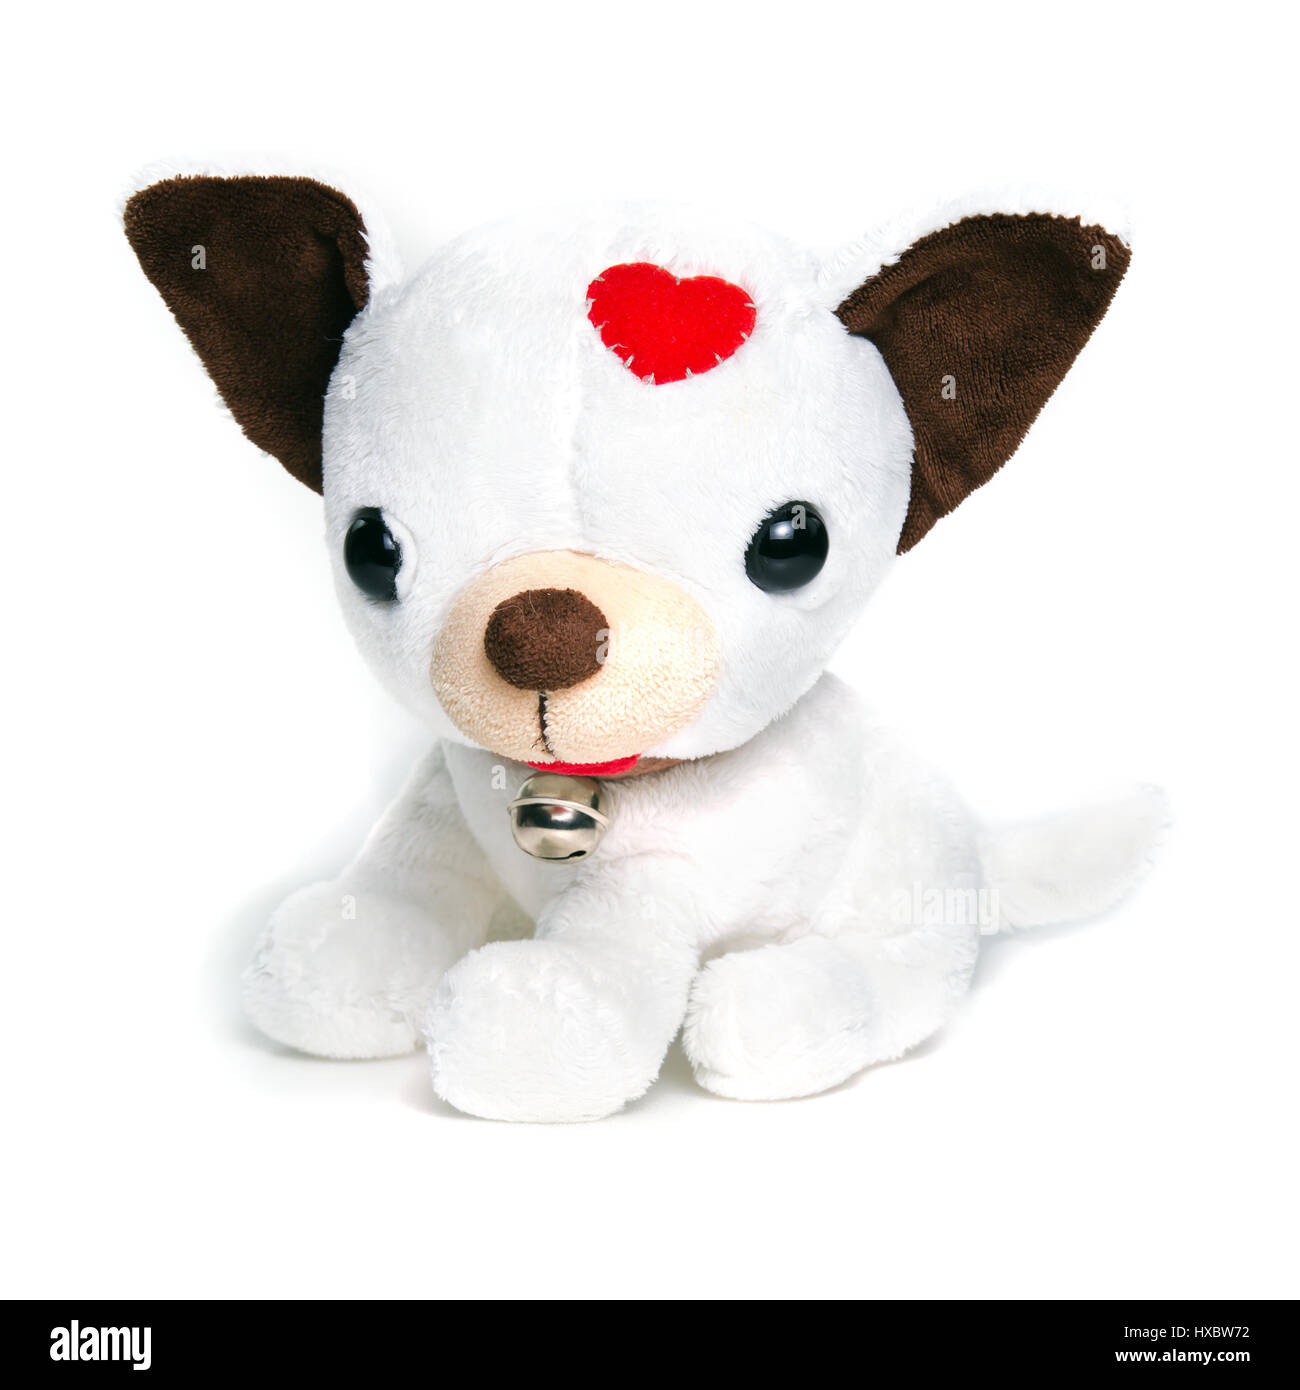 White puppy (dog) doll isolated on white with ring bell collar for decoration and graphic usage - Stock Image